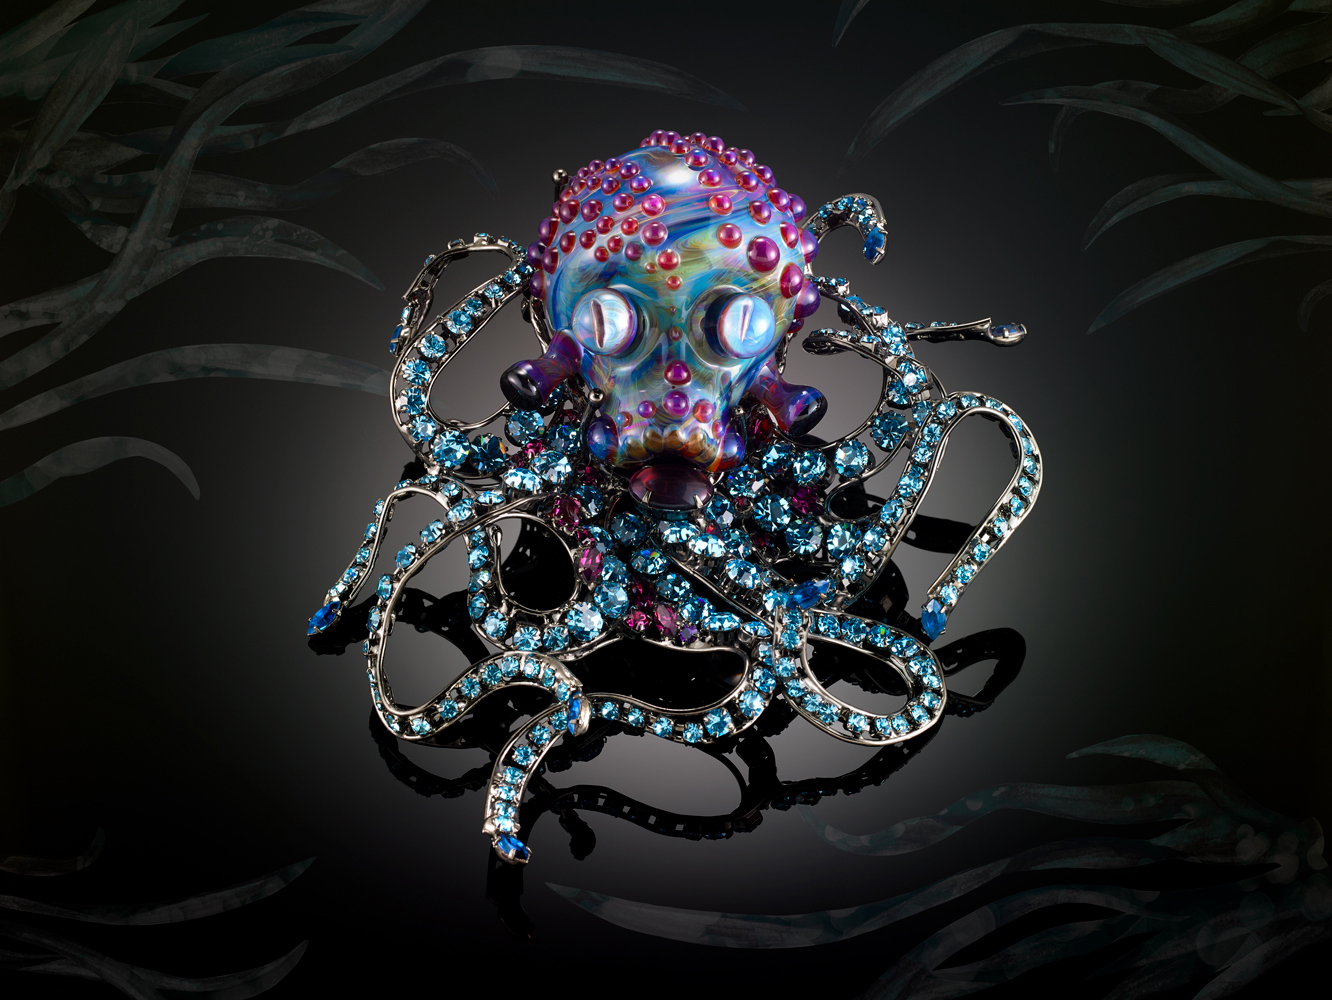 moans-couture-octopus-91905-ad-comp.jpg